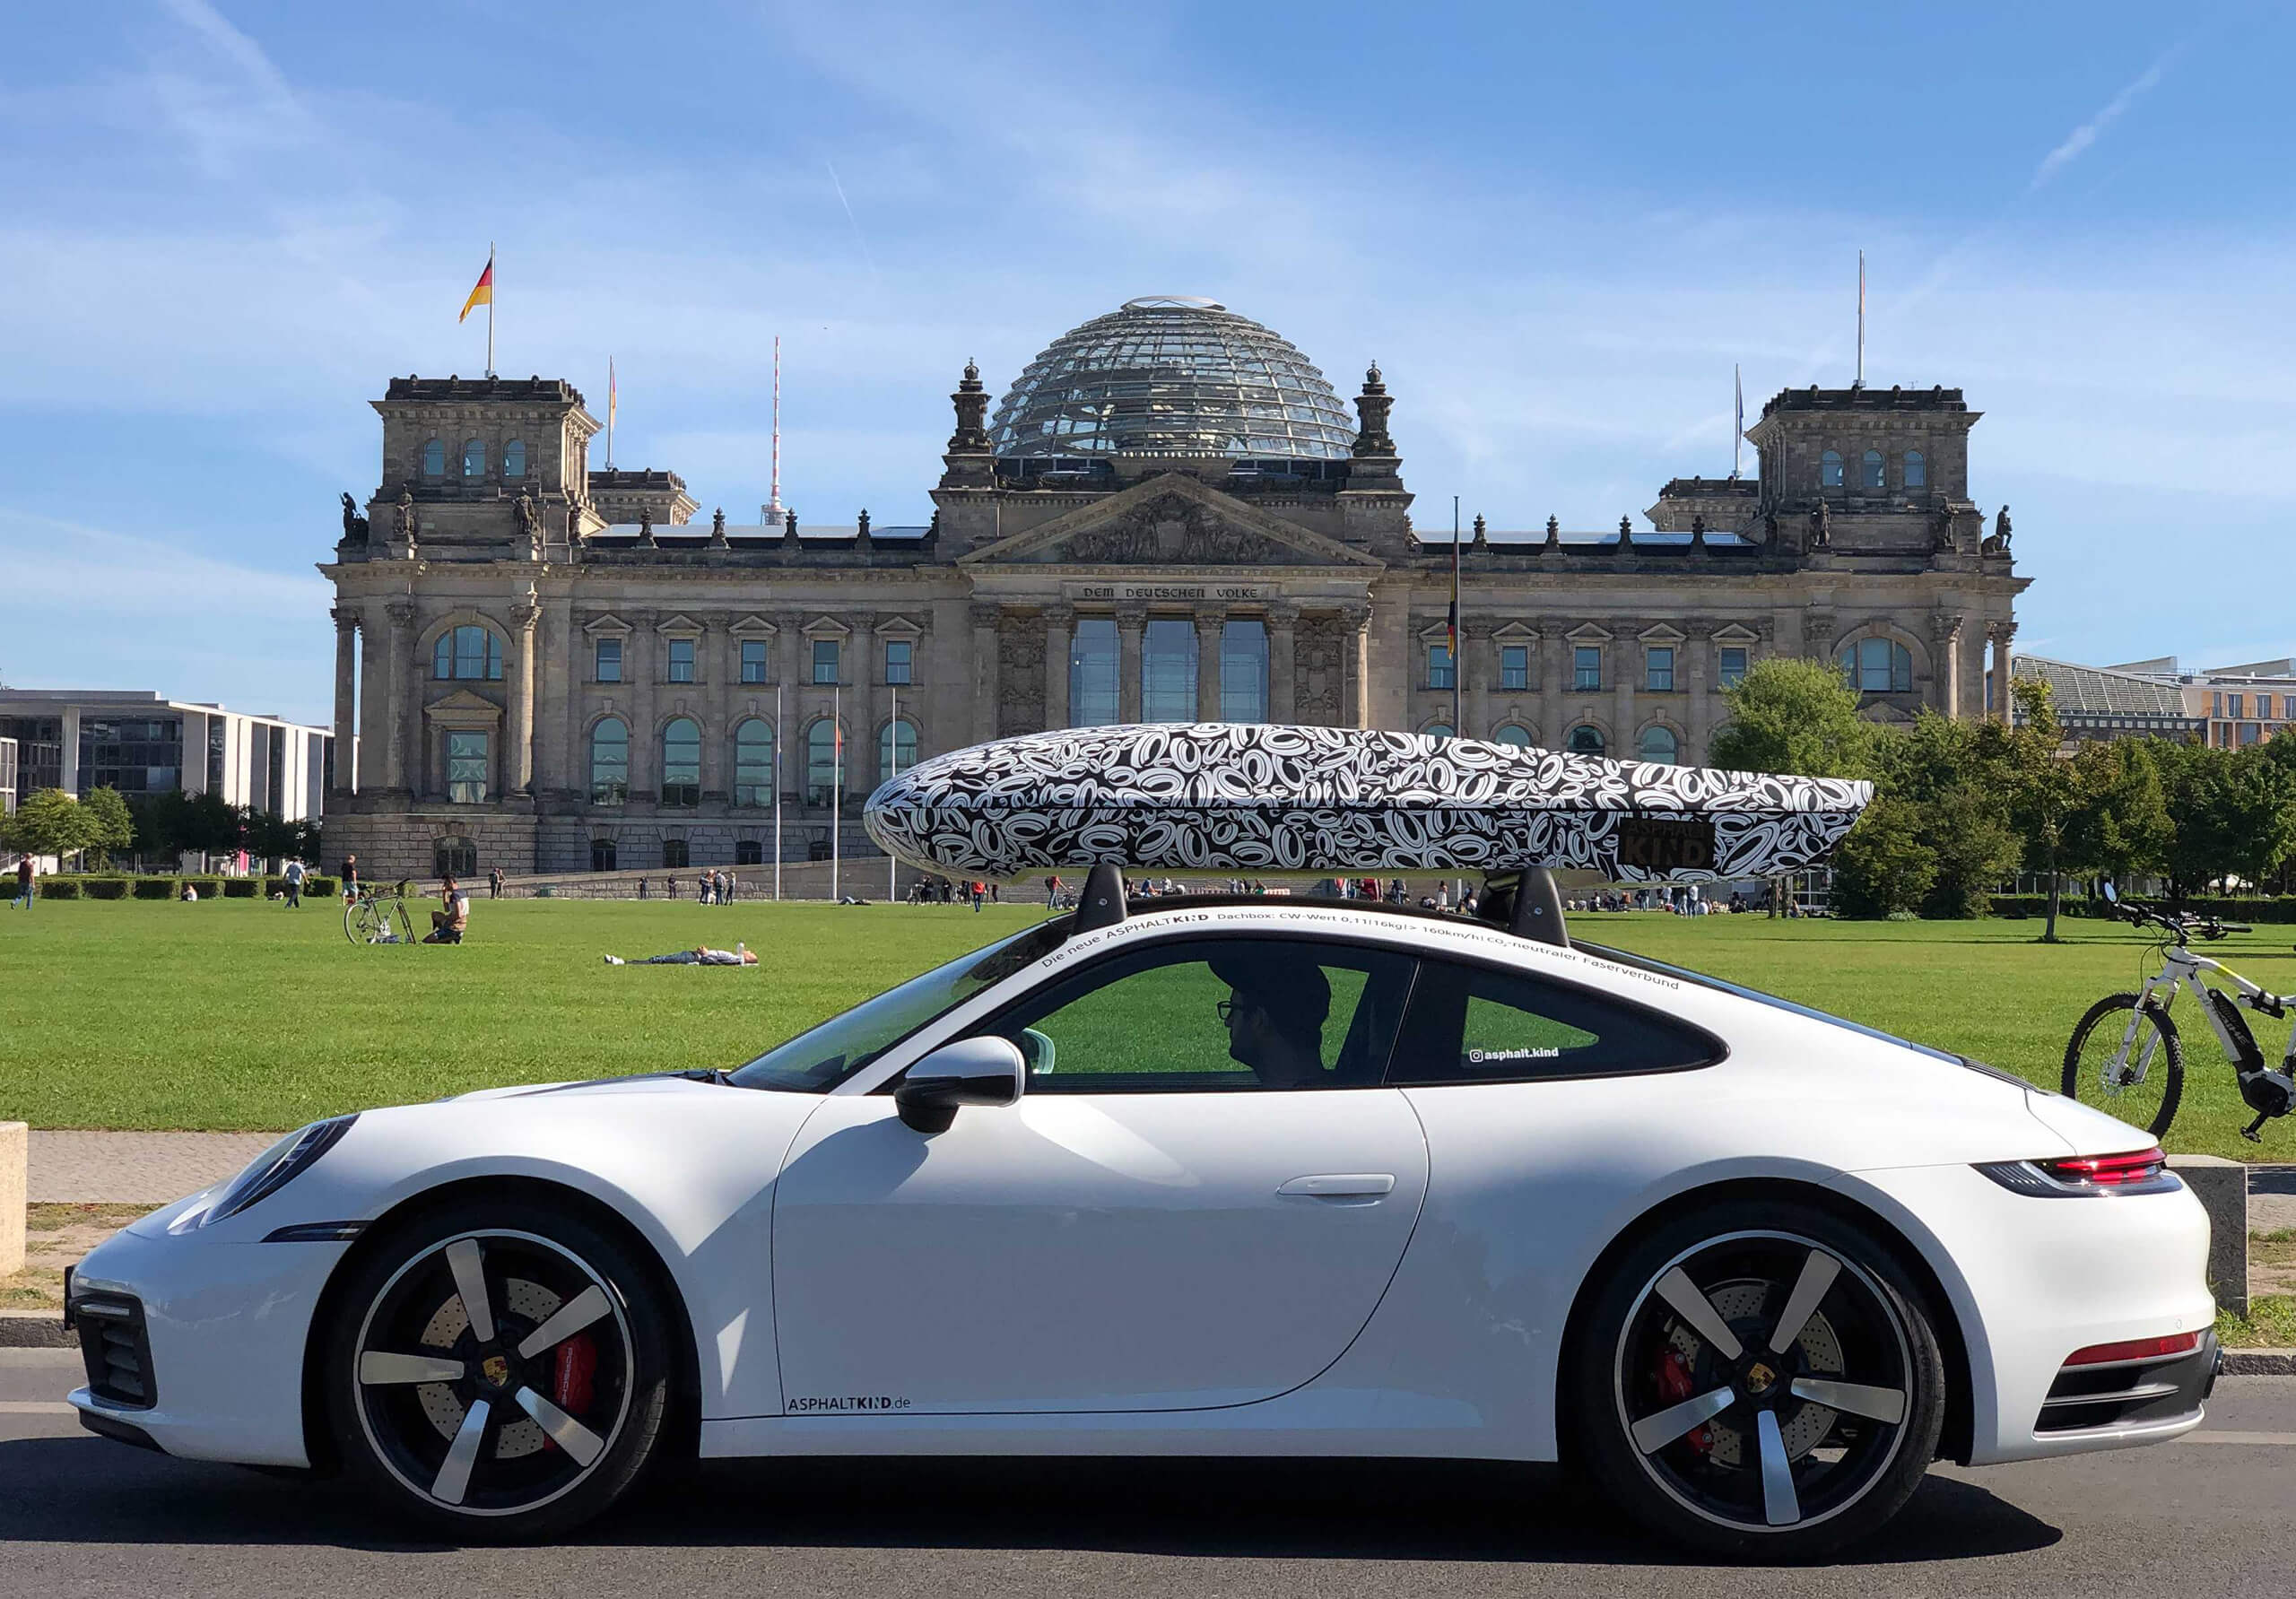 The ASPHALTKIND roof box at the Reichstag